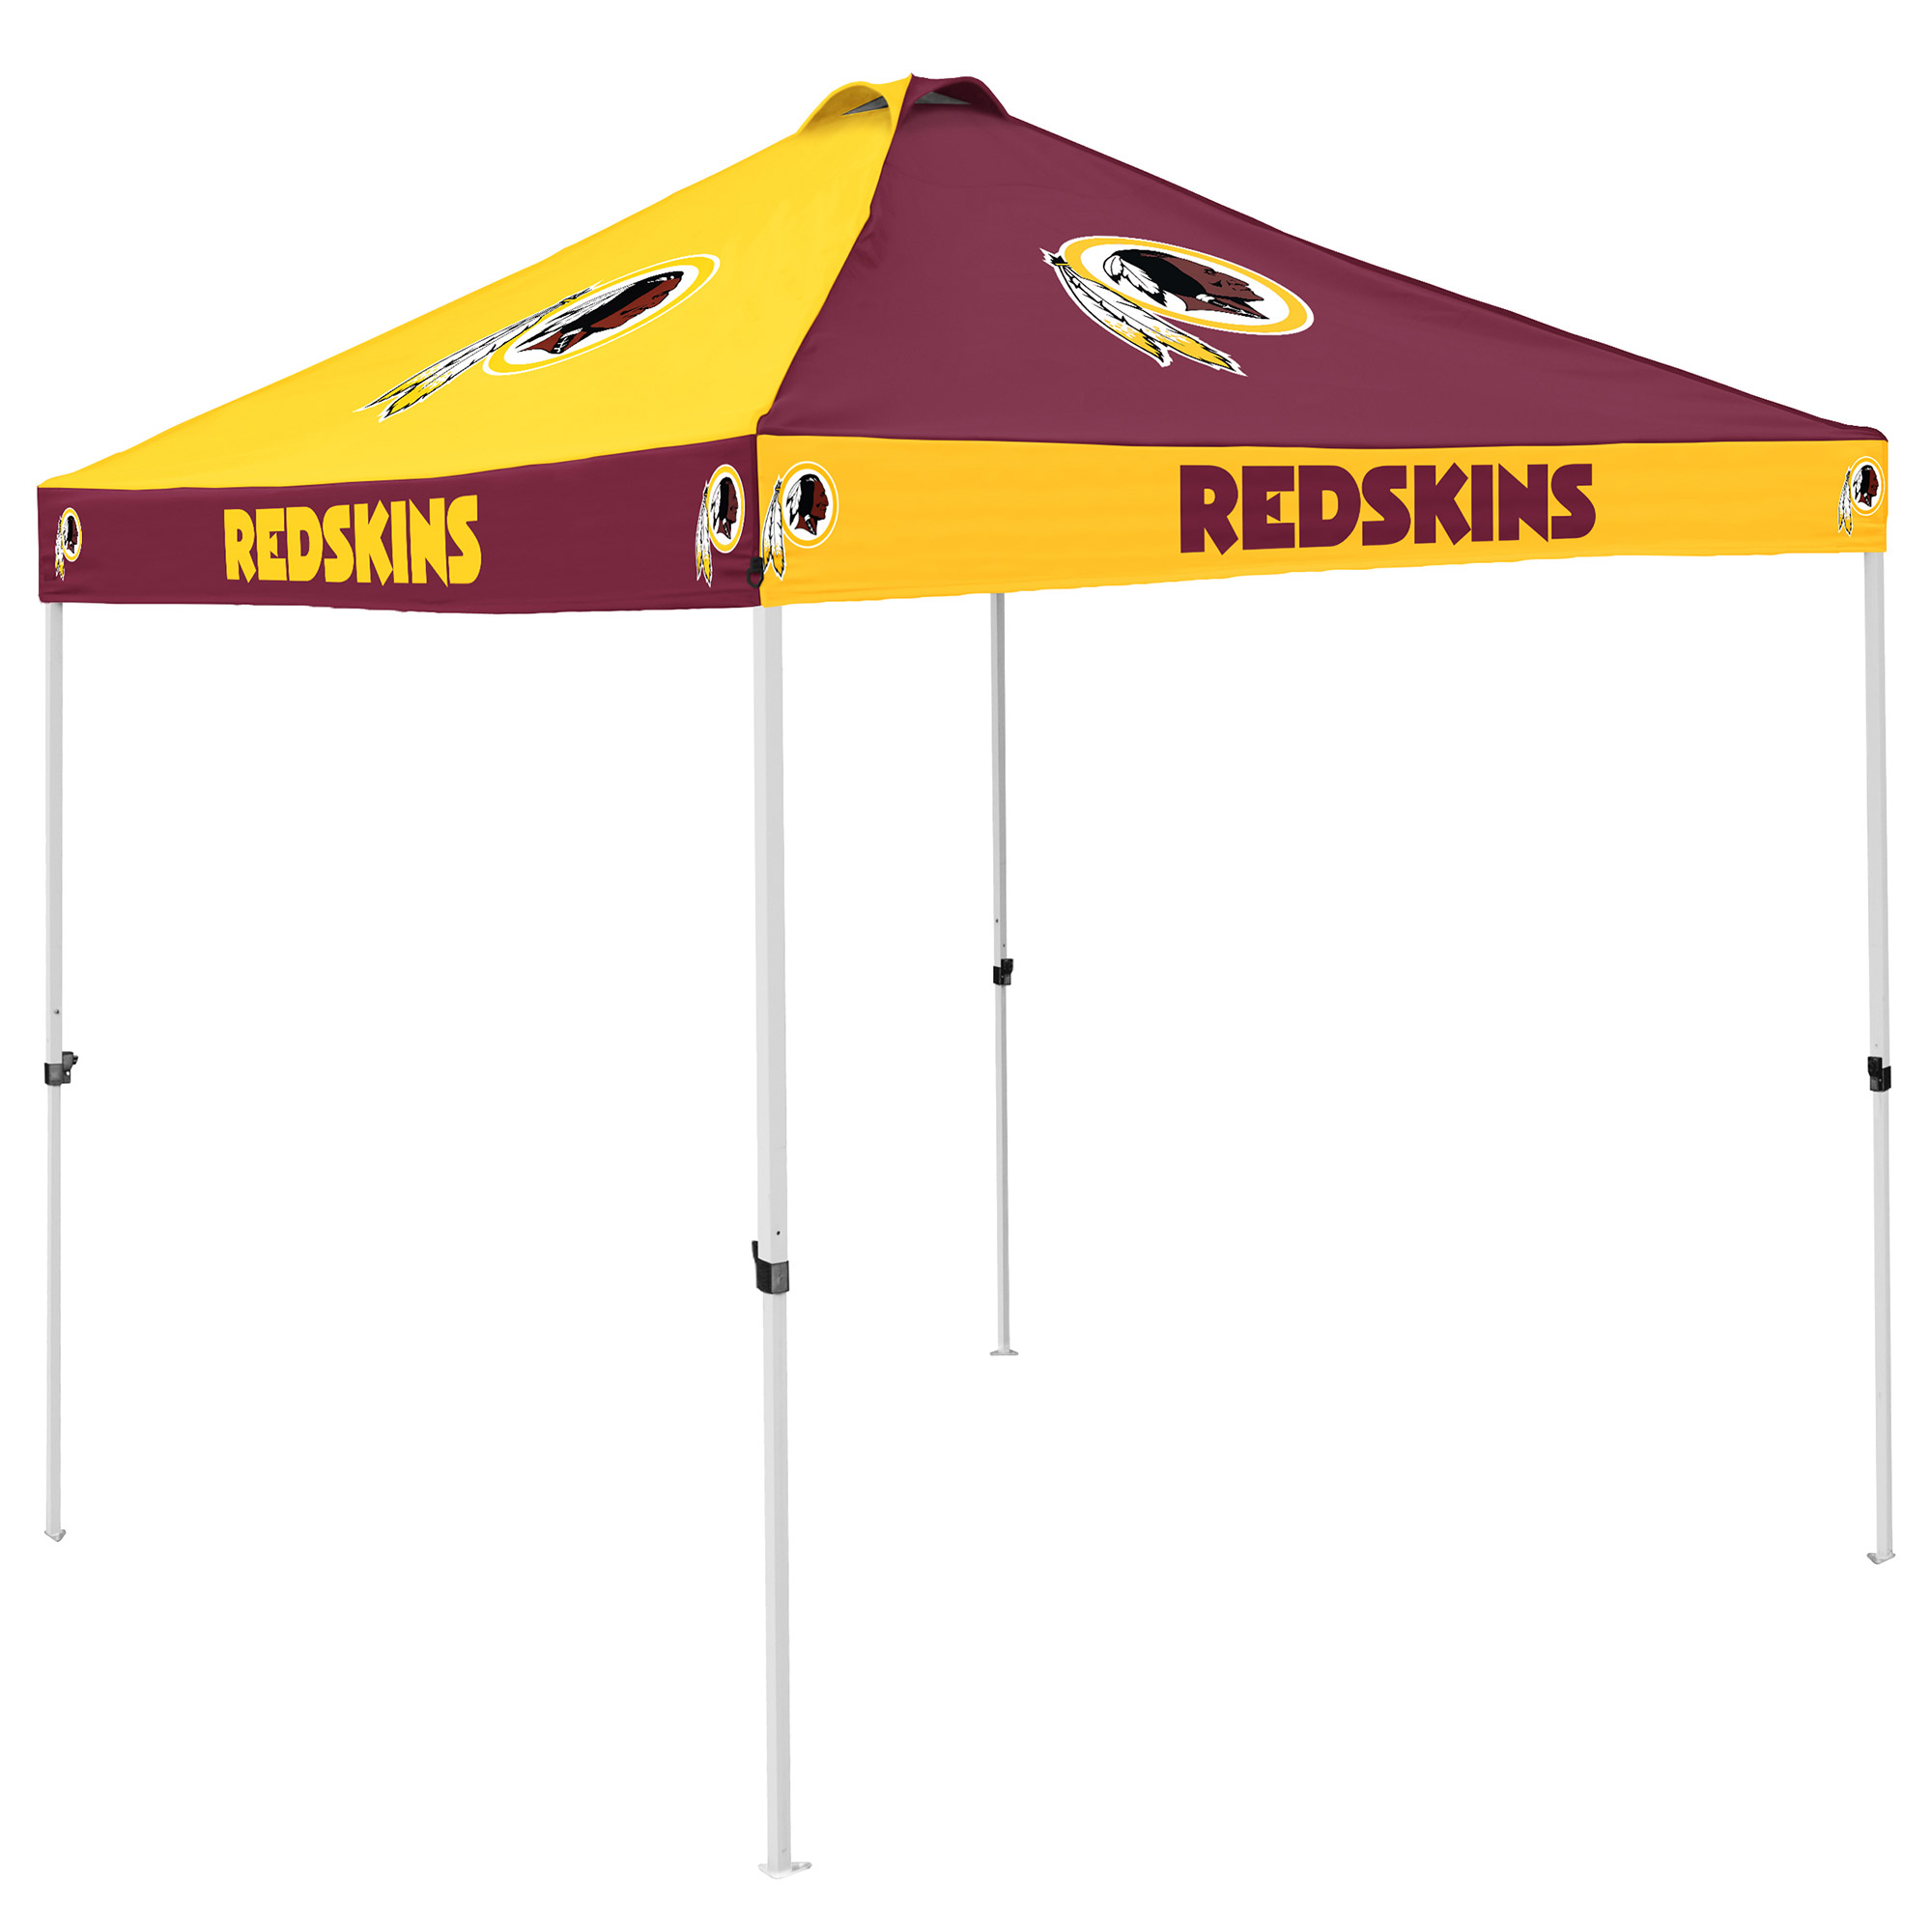 Washington Redskins Checkerboard Tent - No Size